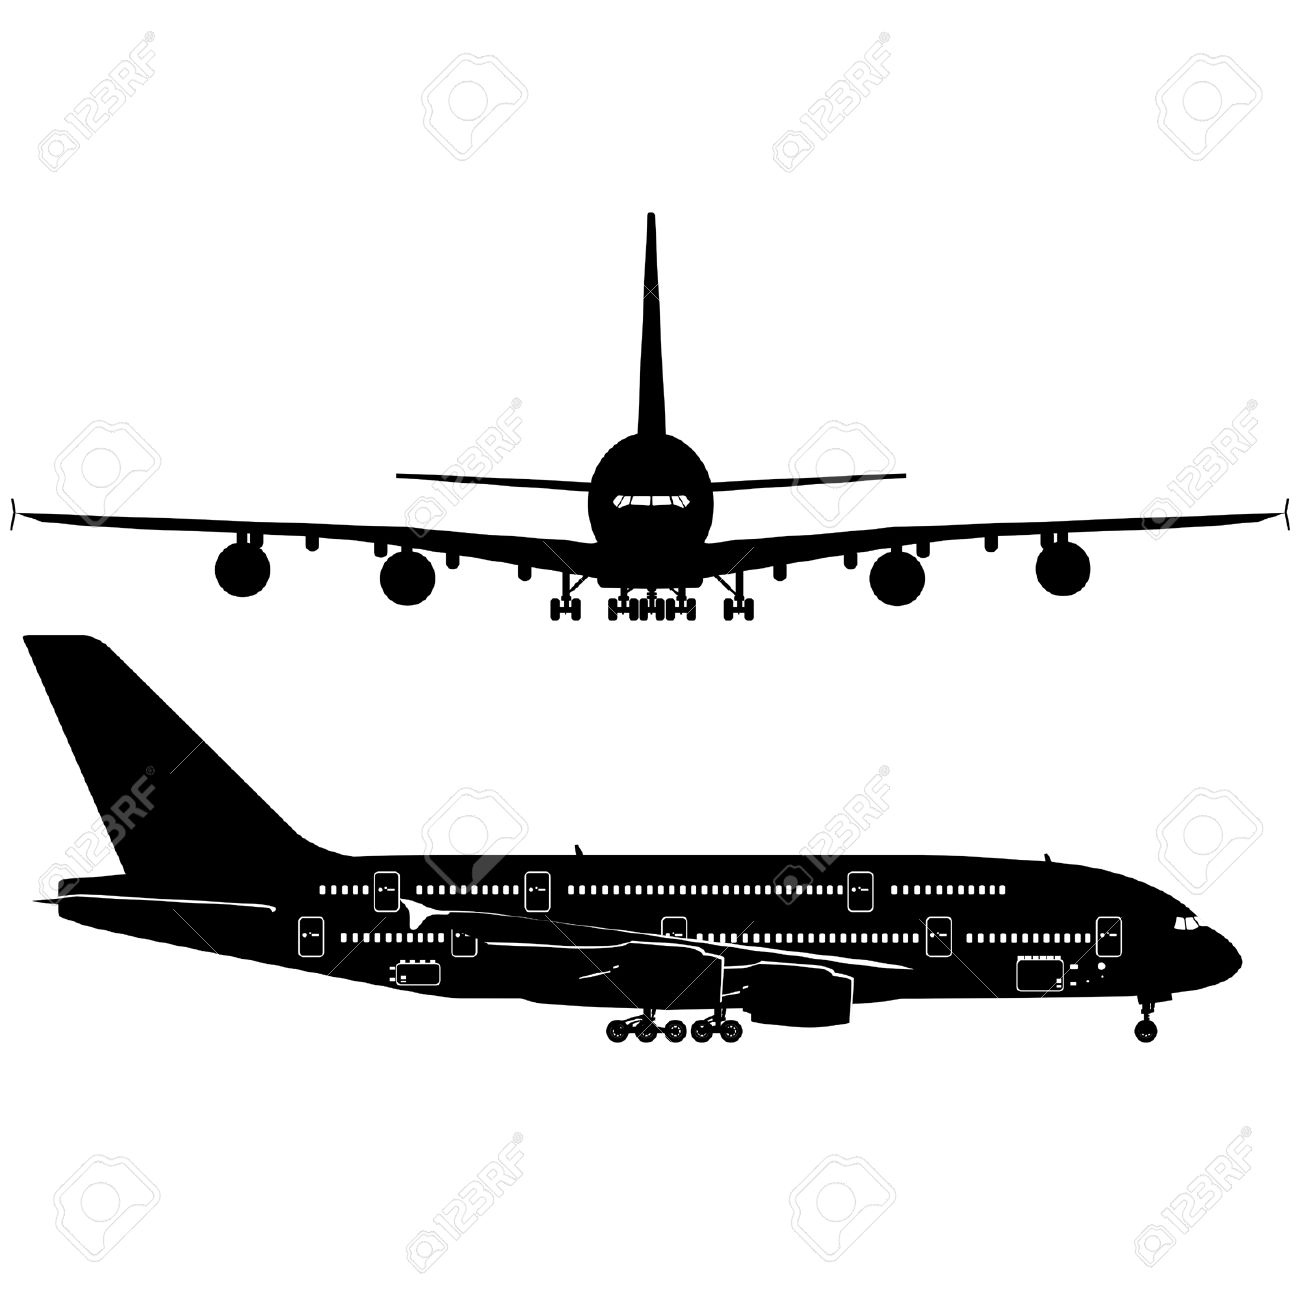 Passenger Jetliner A380 Royalty Free Cliparts, Vectors, And Stock.